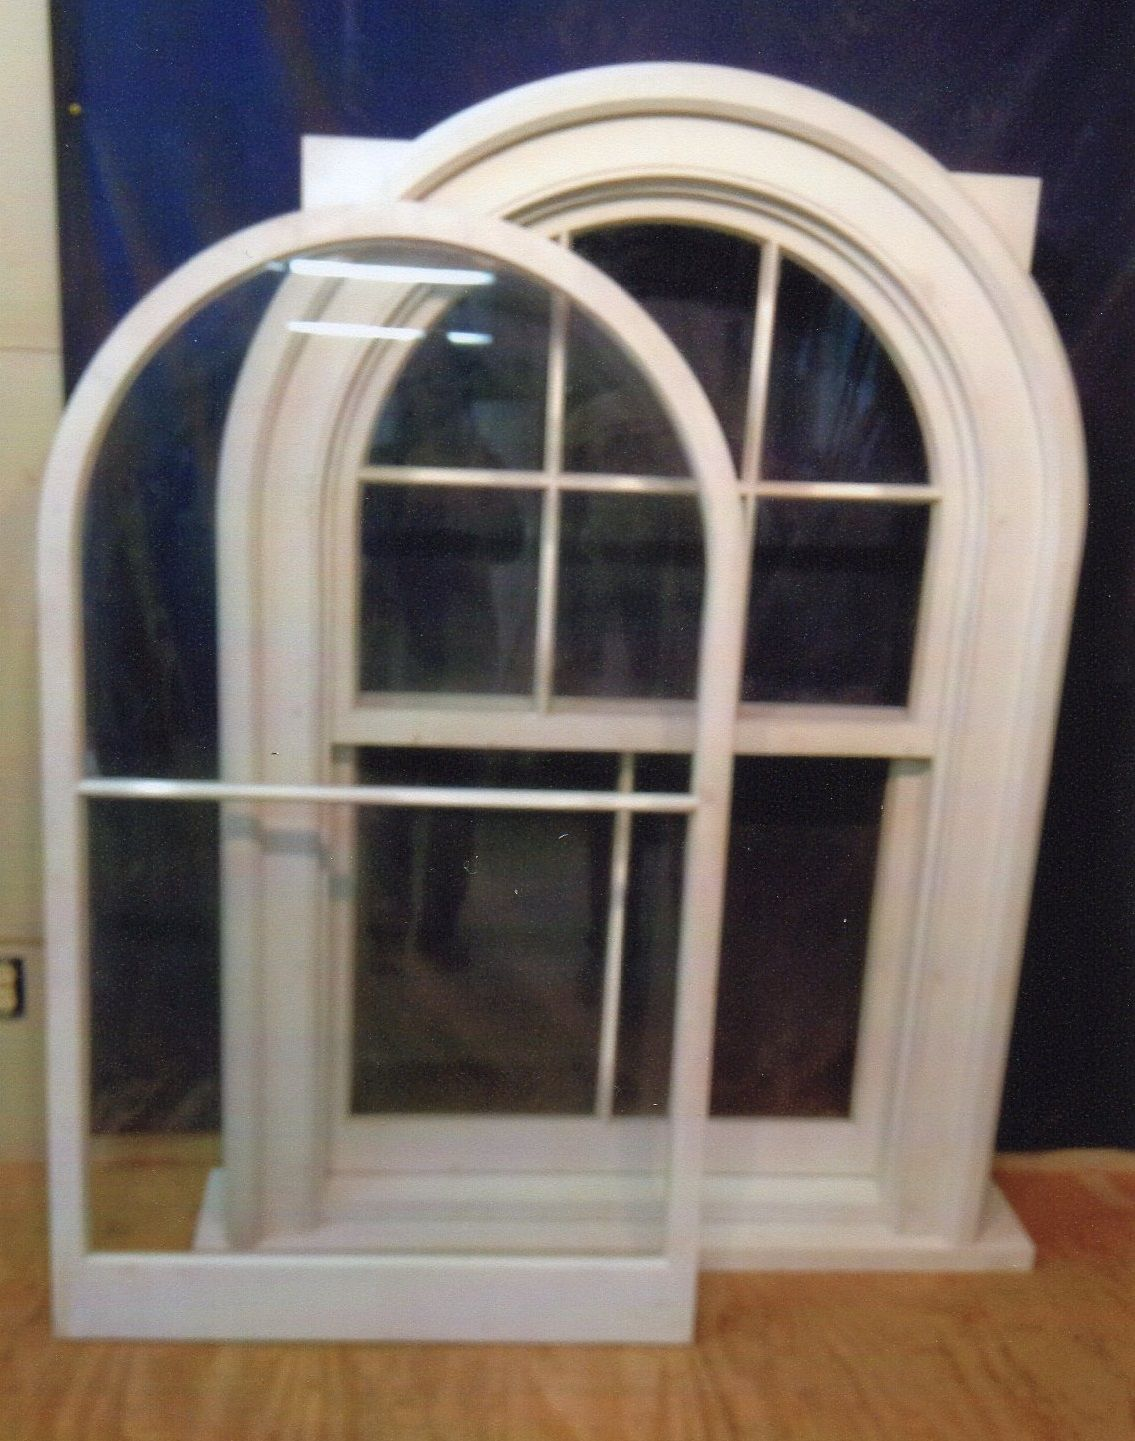 Wood custom double hung windows jim illingworth millwork for Arch top windows